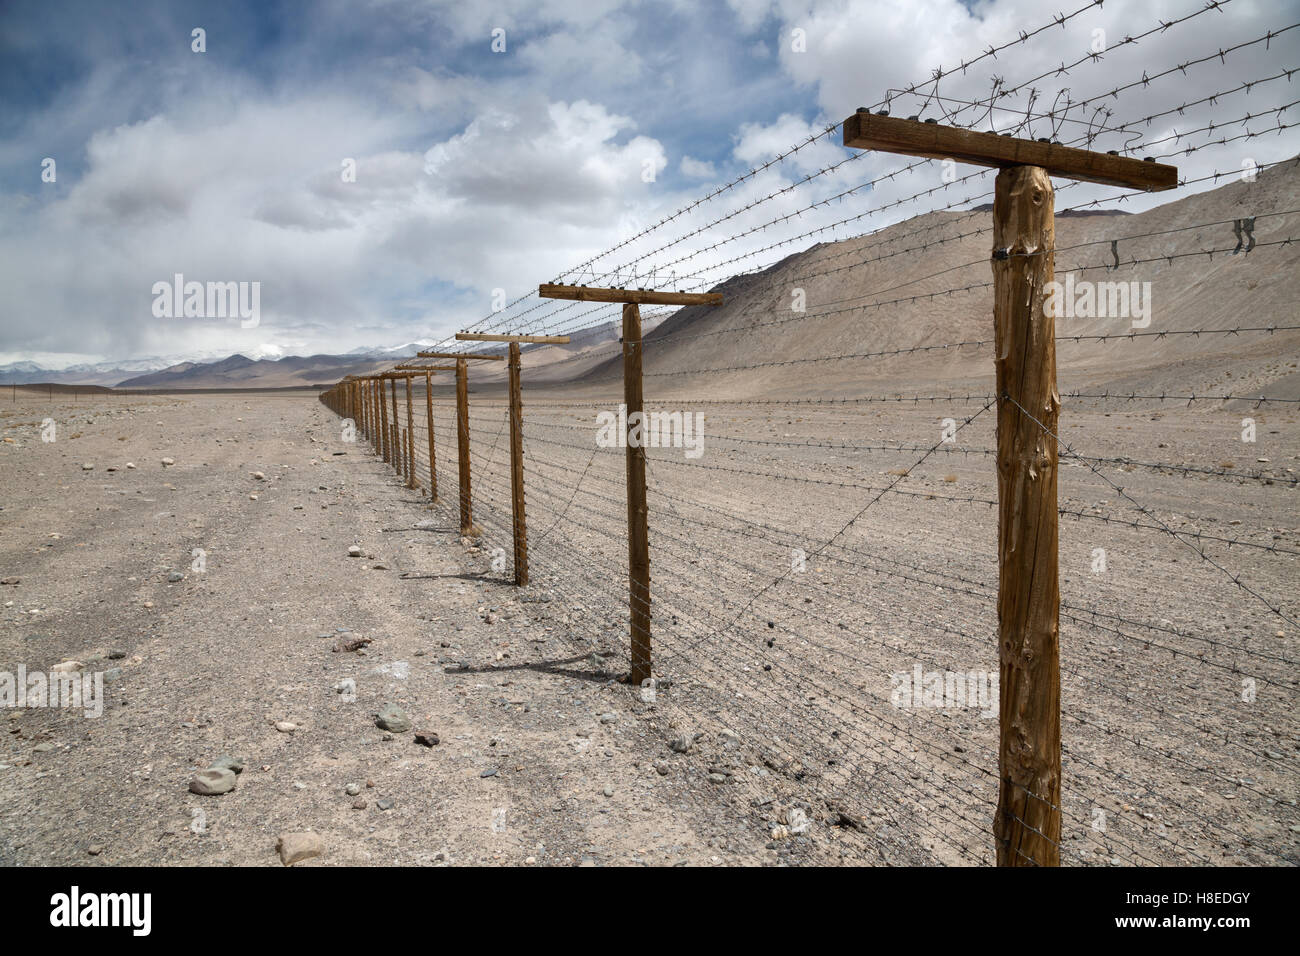 Security fence - no access- at the border between Tajikistan and China - GBAO province - Stock Image